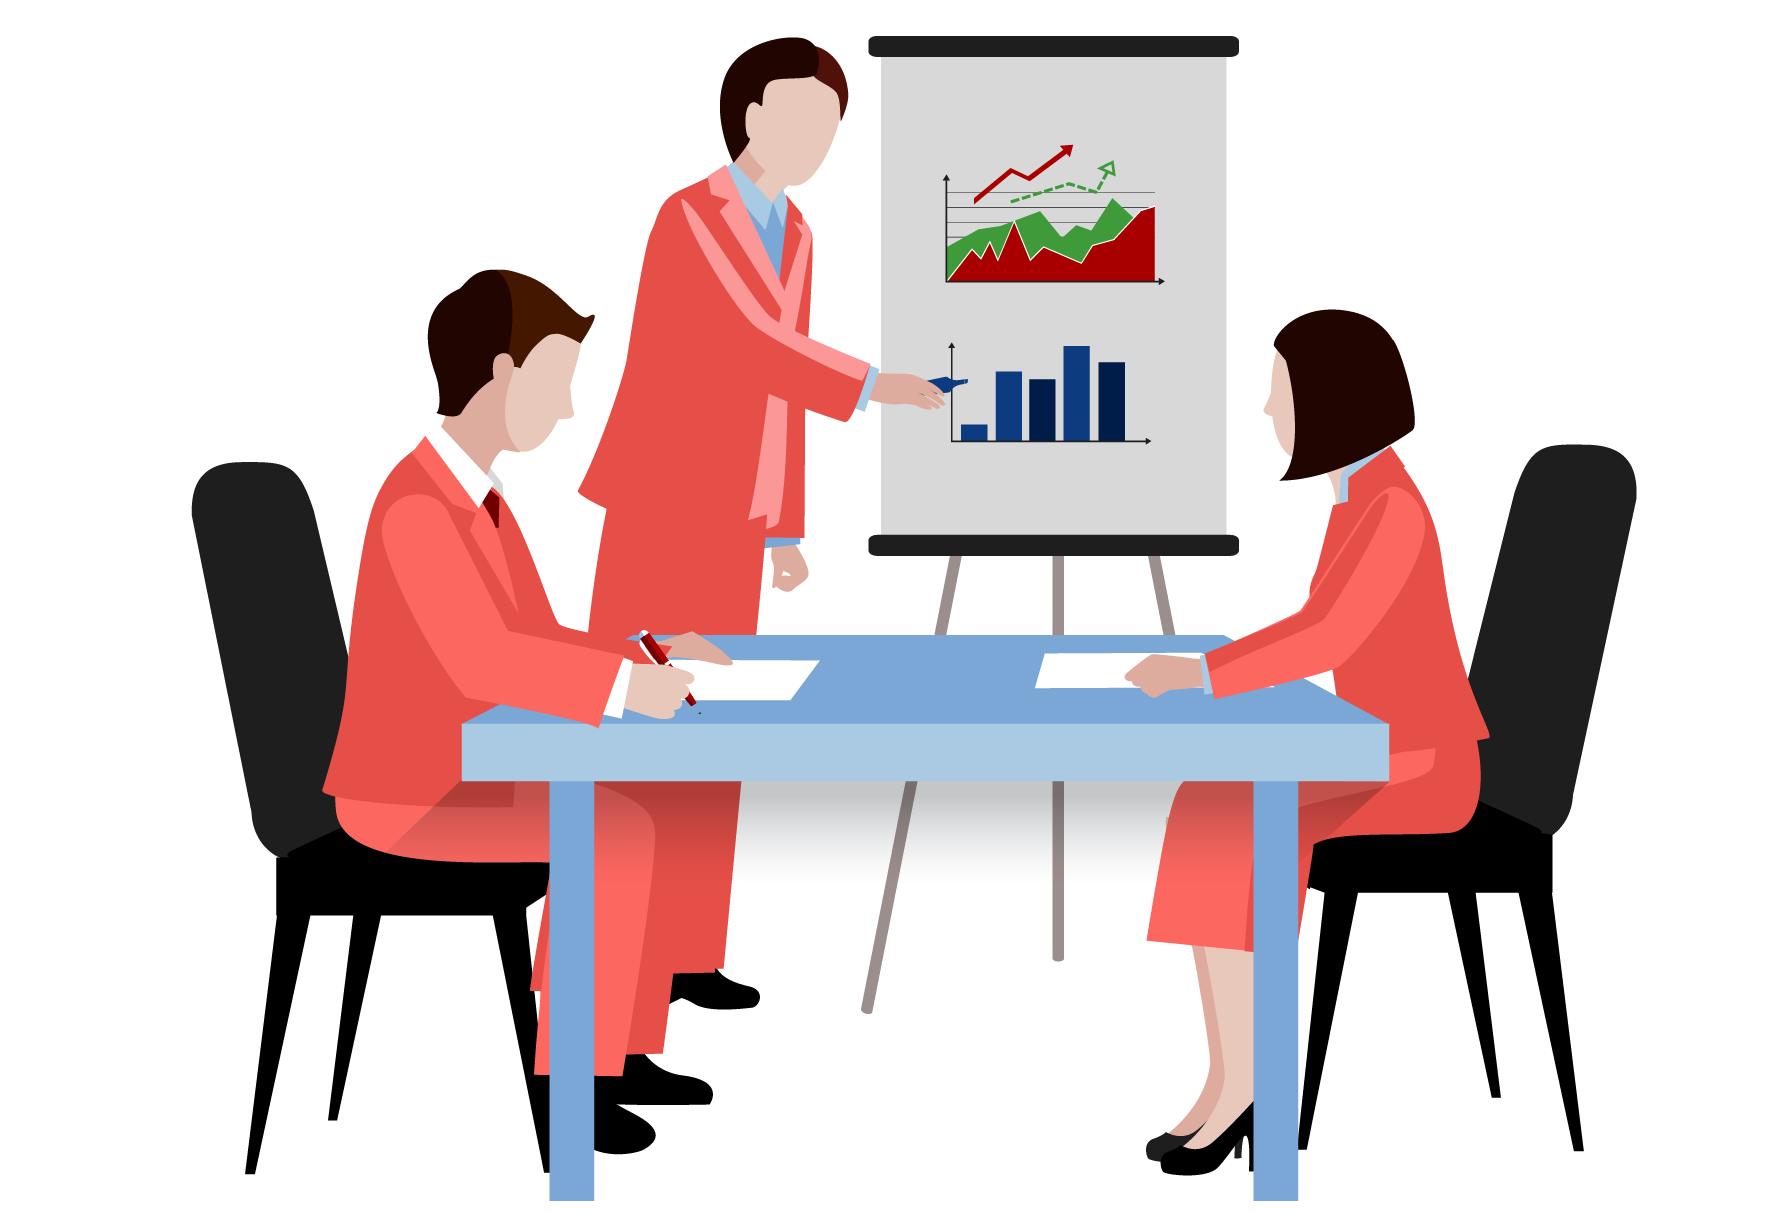 Sales head presenting sales figures by bar diagram with two employees on a white board